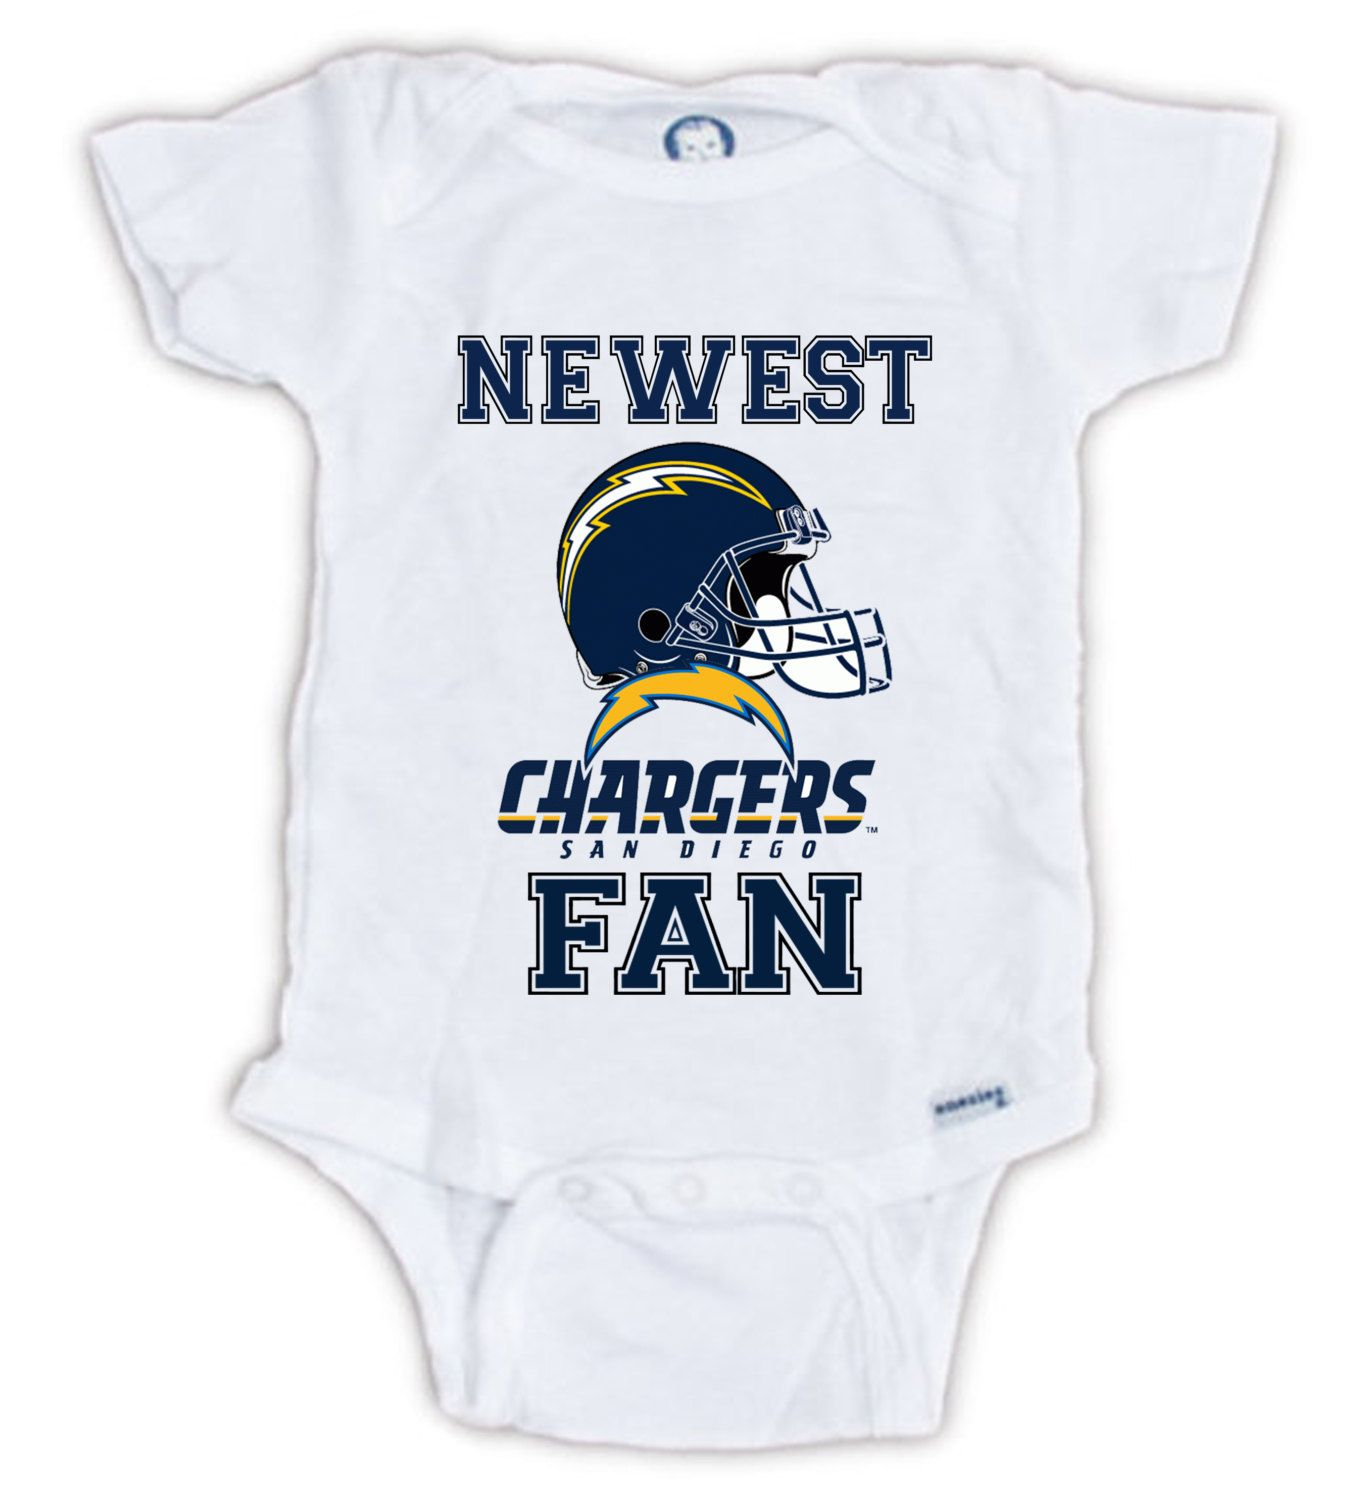 San Diego Chargers Baby Clothes: San Diego CHARGERS Newest FAN Baby Onesie, Baby Bodysuit